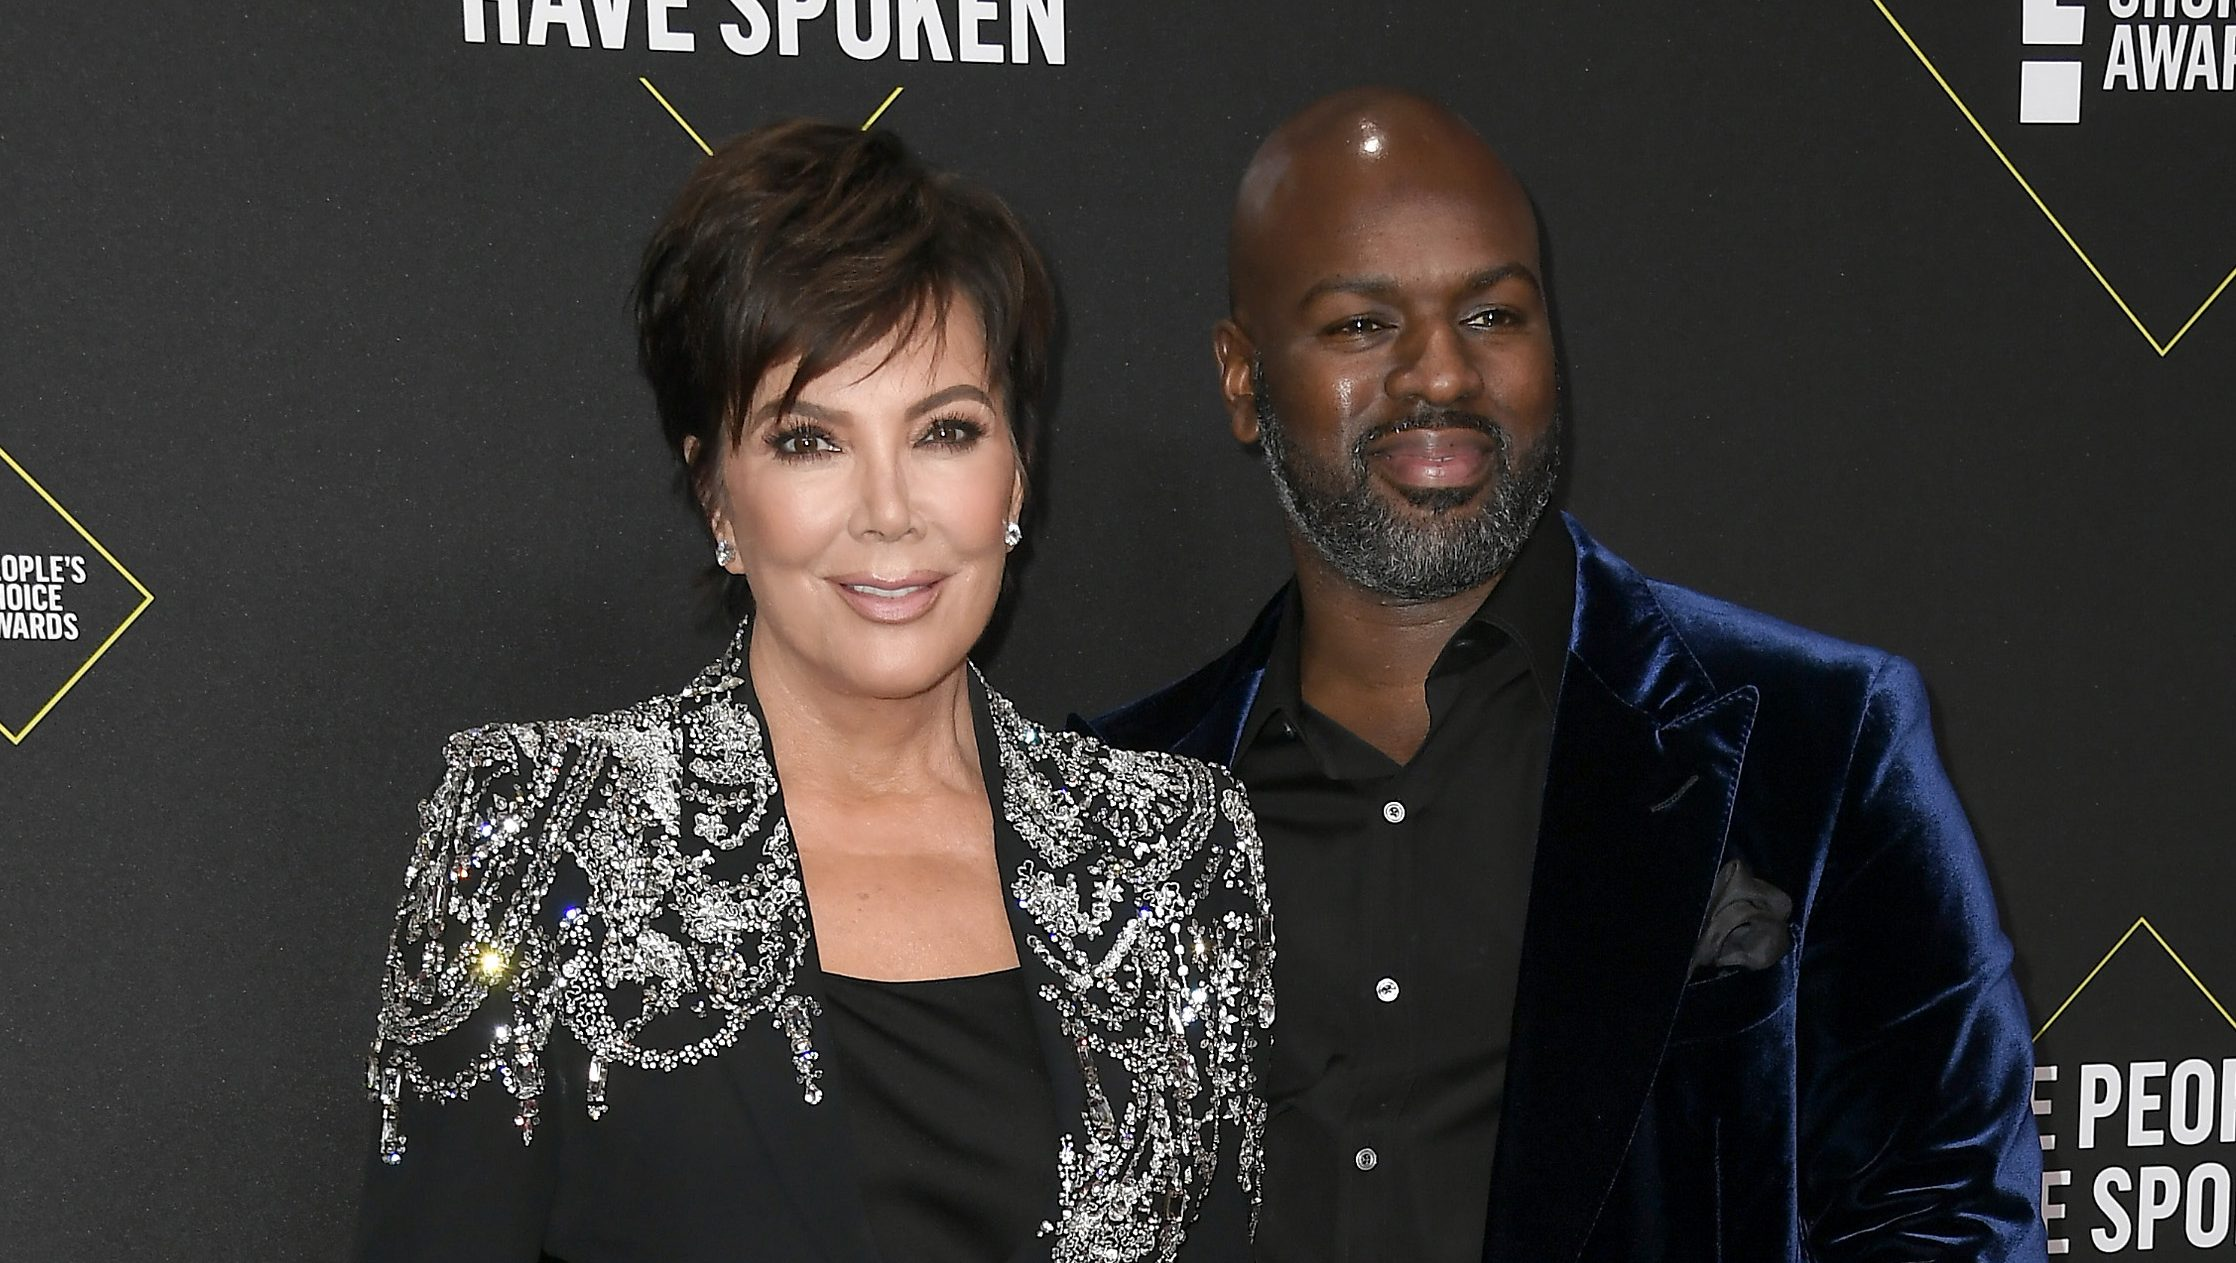 Kris Jenner and Corey Gamble Address Jealousy In Their Relationship